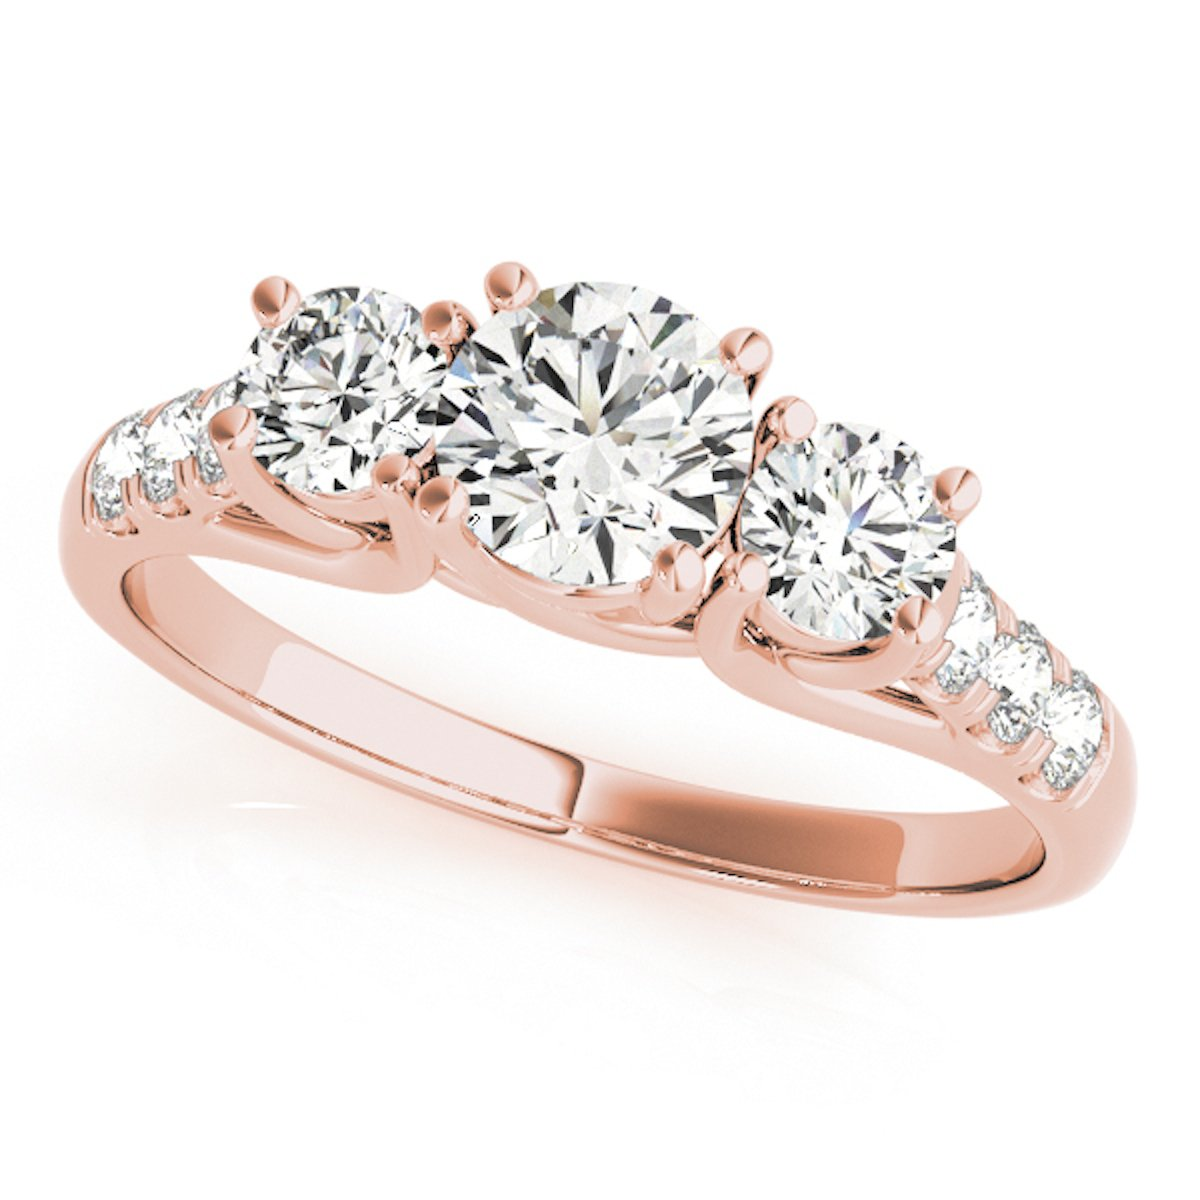 1/2 Carat Engagement Ring Crafted In 14k Solid Rose Gold